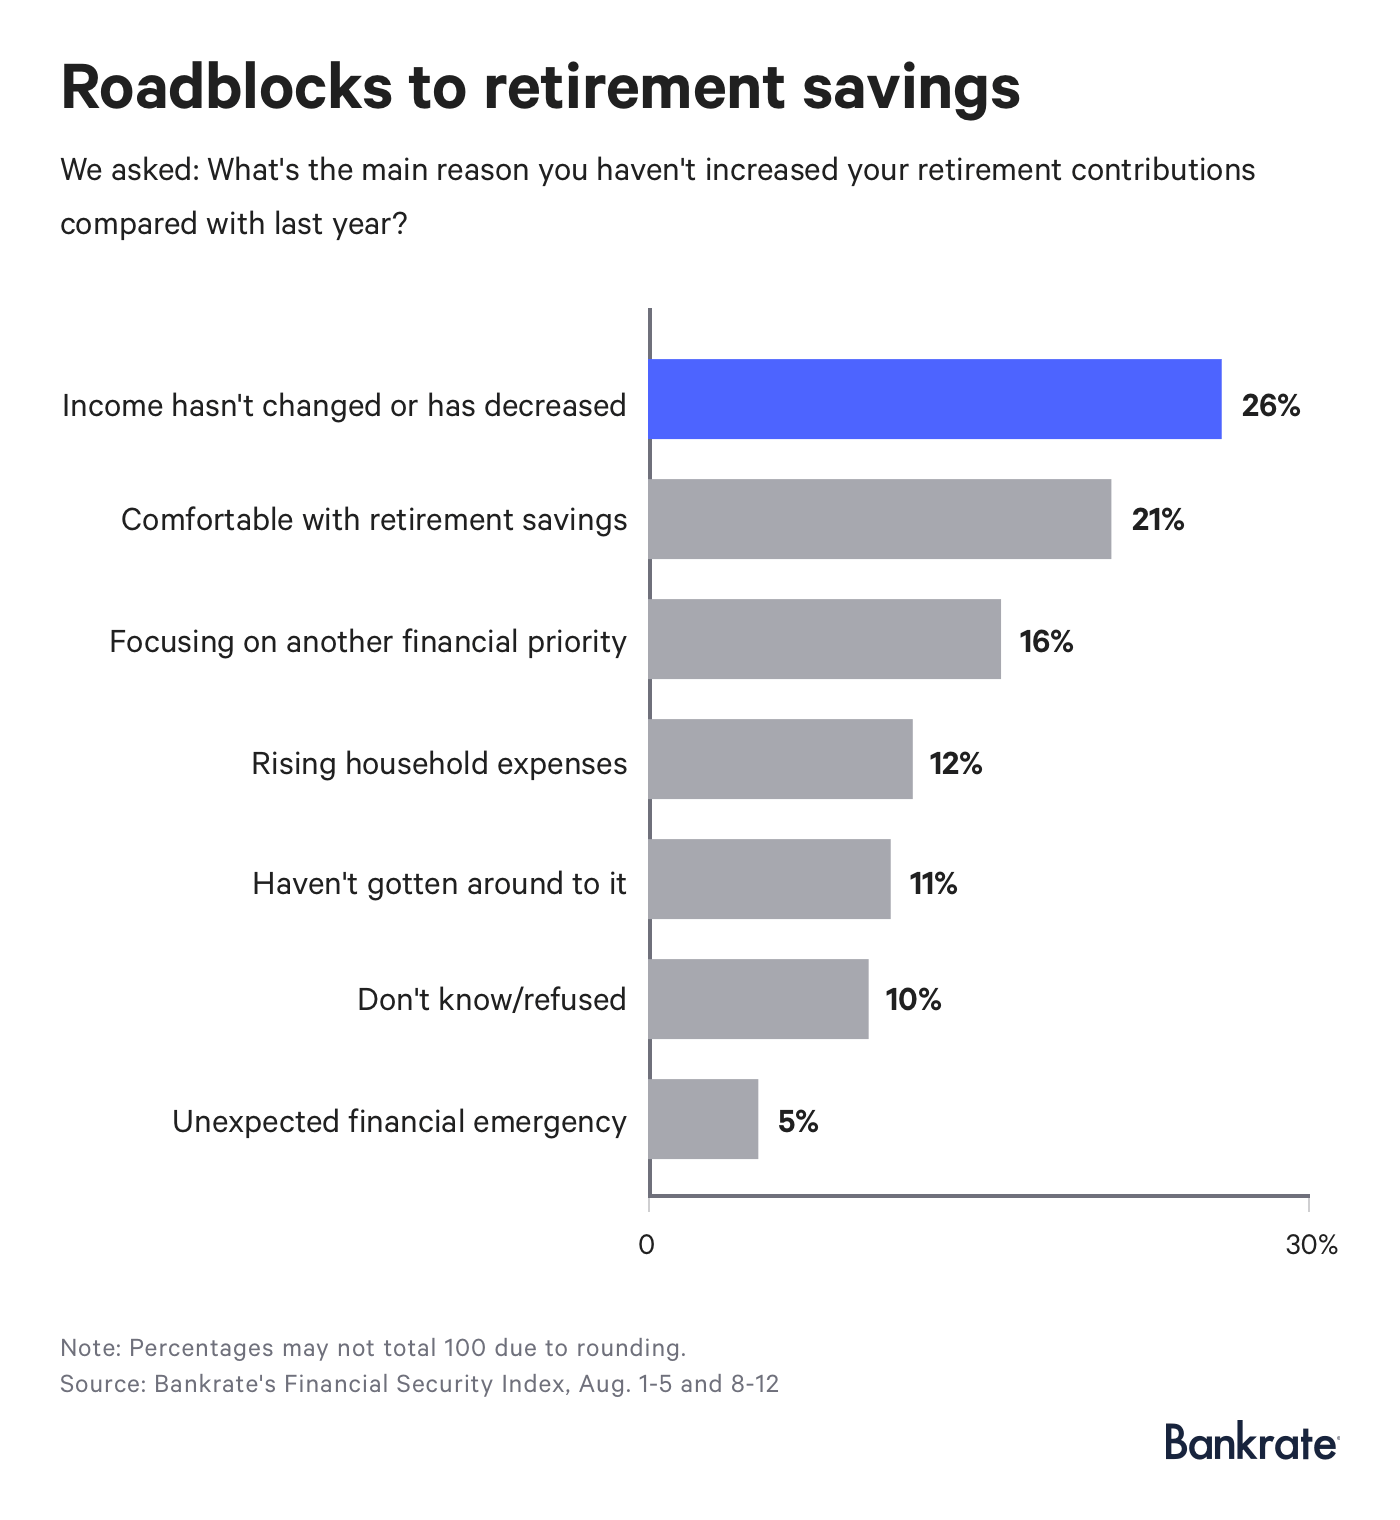 Roadblock to retirement savings